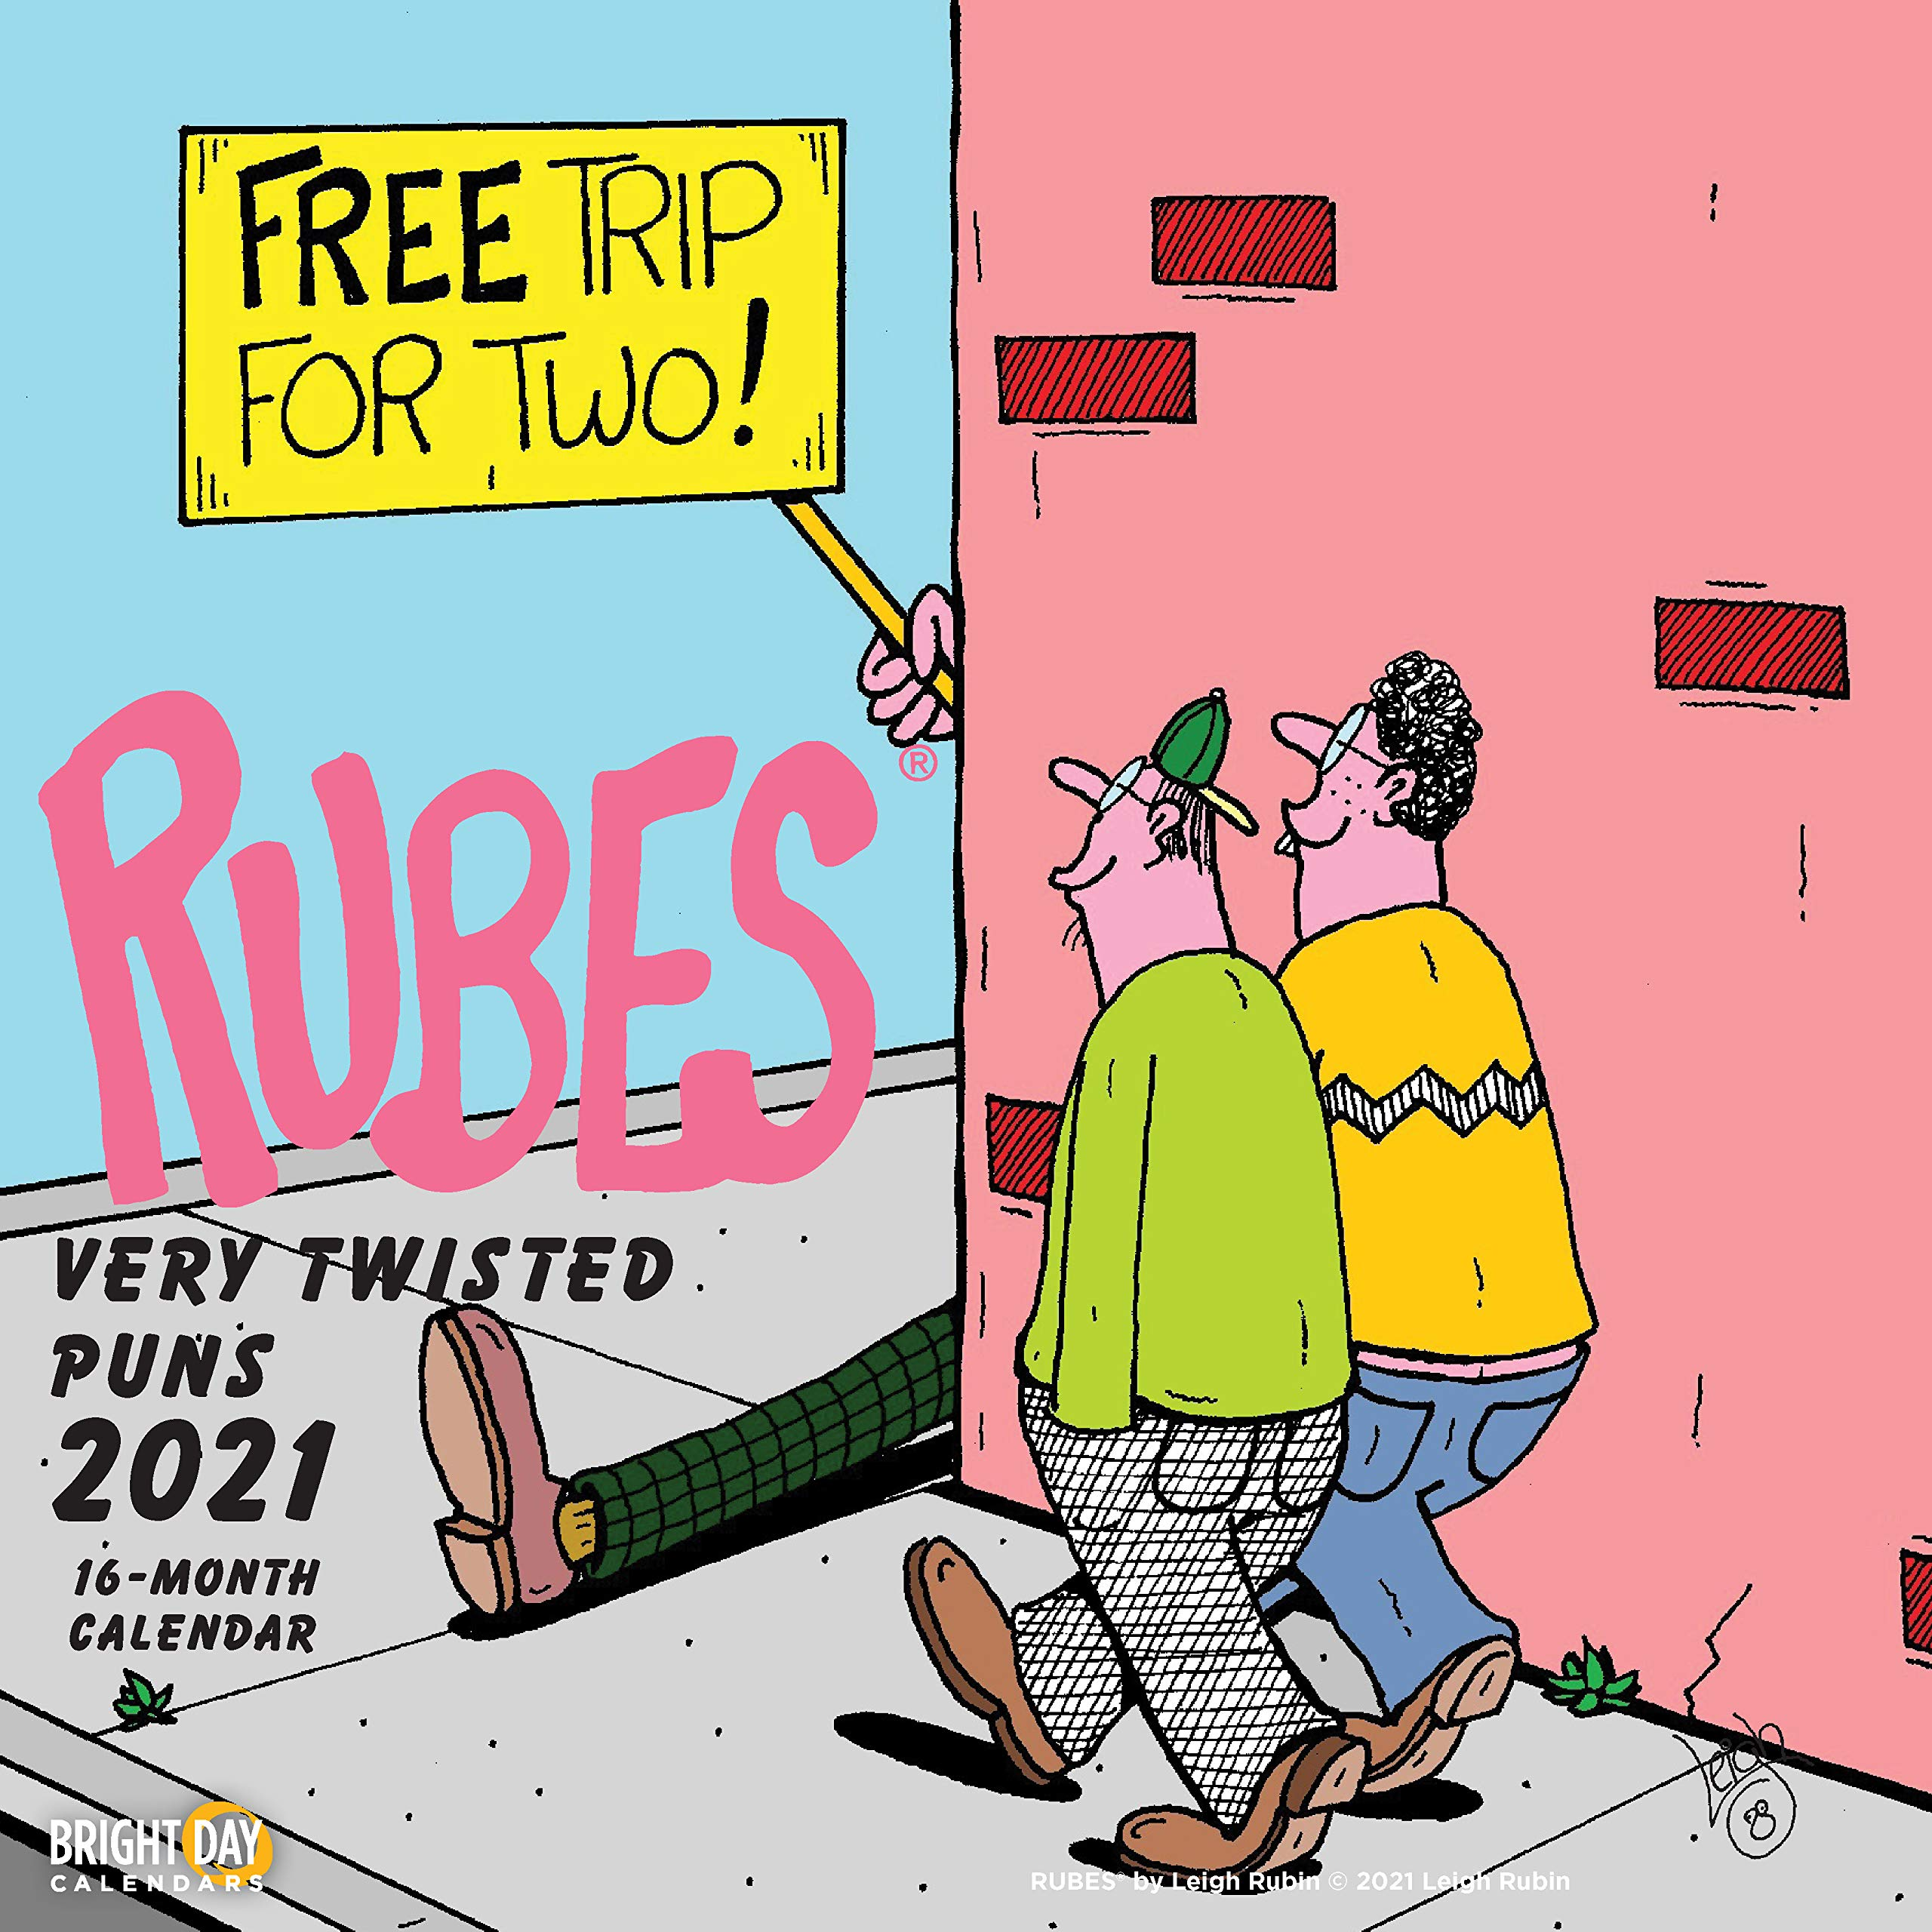 2021 Rubes Wall Calendar by Bright Day, 12 x 12 Inch, Humor Jokes Laughs Funny Novelty Comic Strip… (Twisted Puns)